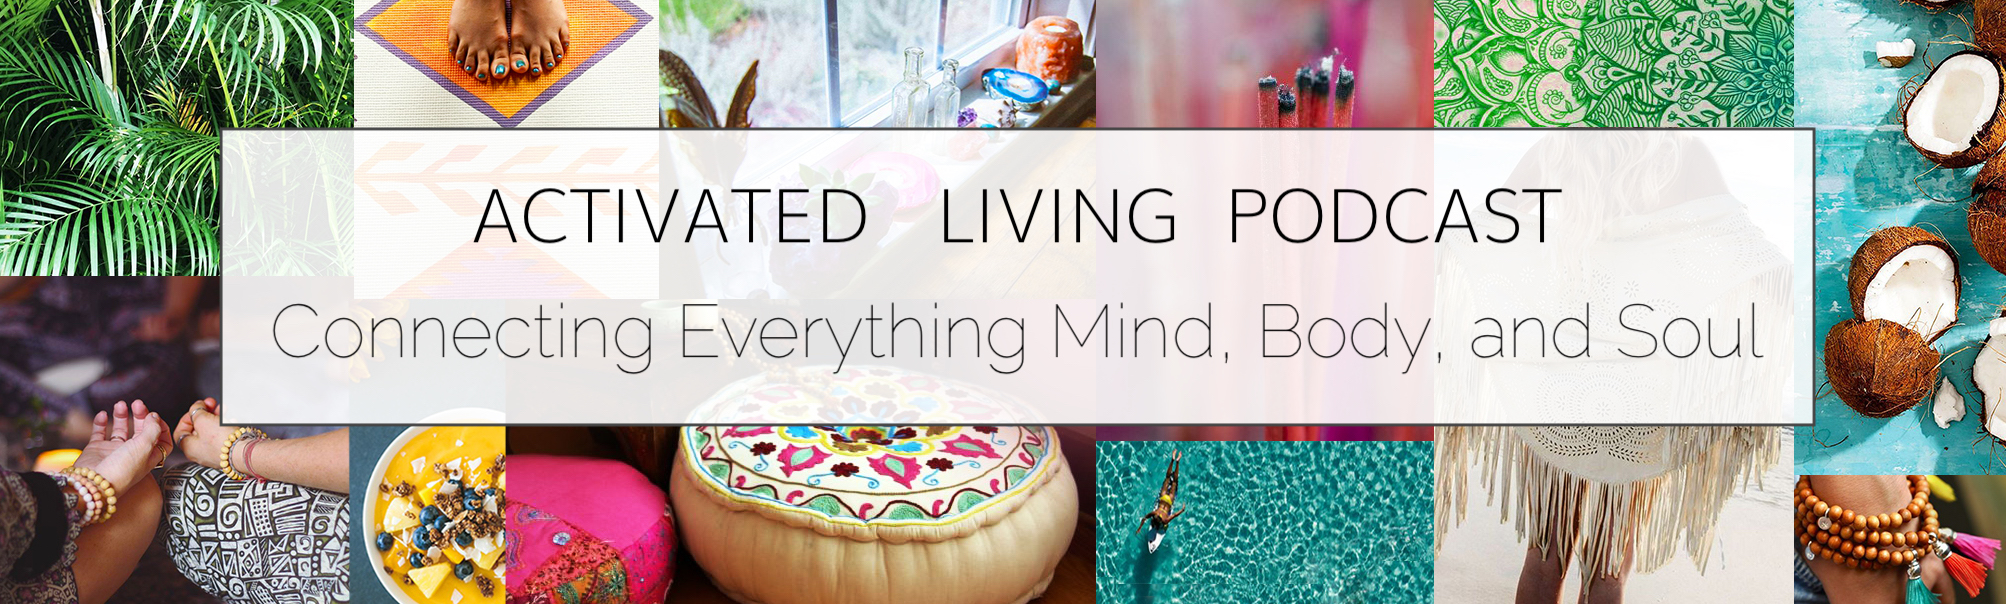 activated-living-podcast